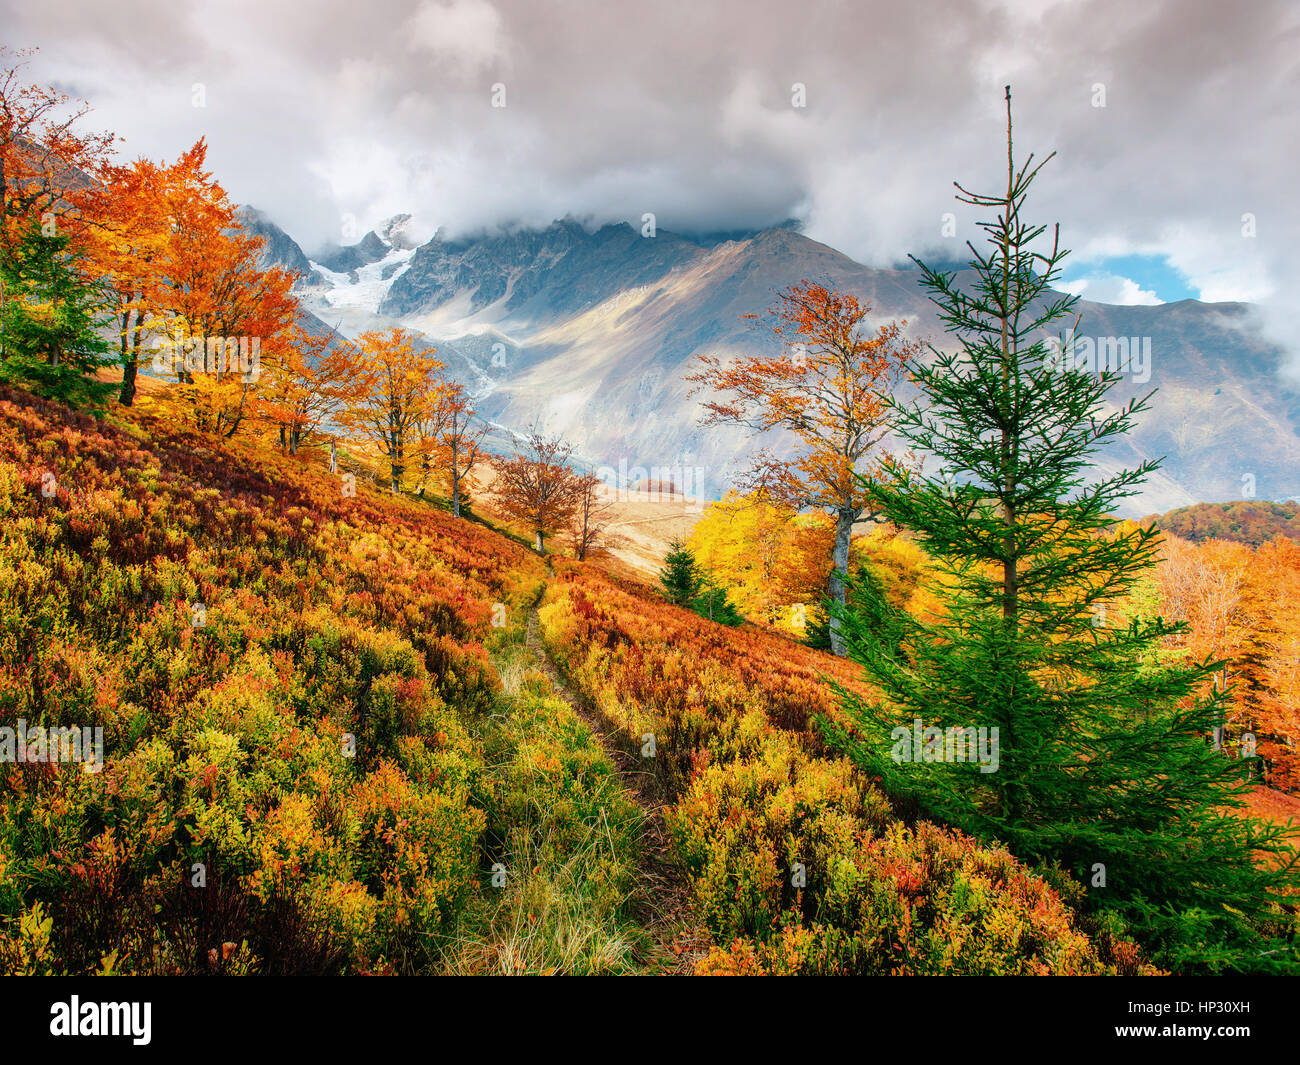 mountain range in the Carpathian Mountains in the autumn season. - Stock Image